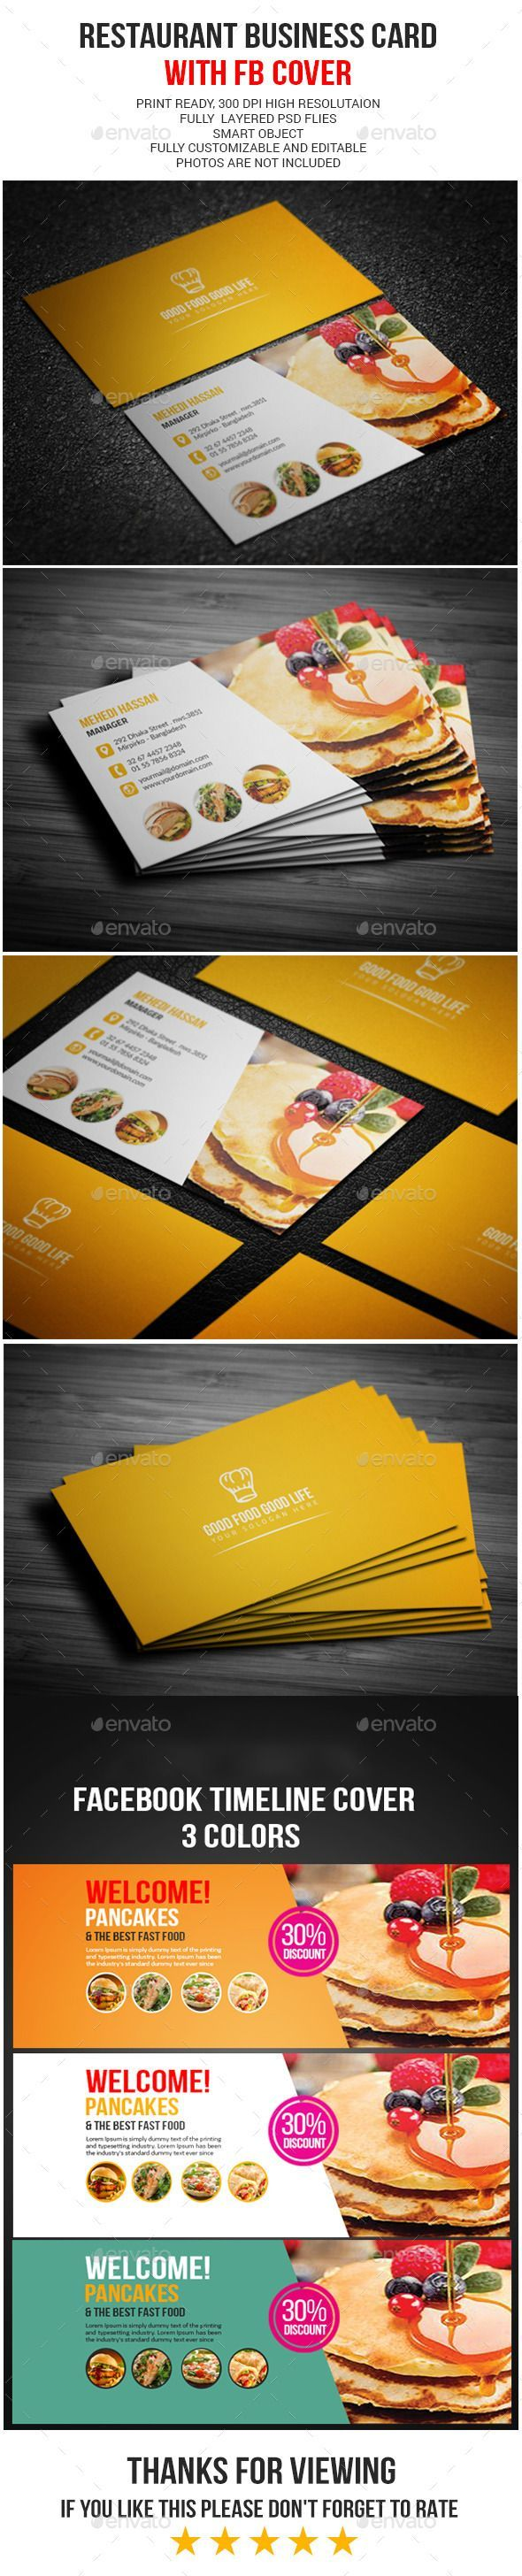 Restaurant Business Card u2014 Photoshop PSD visiting